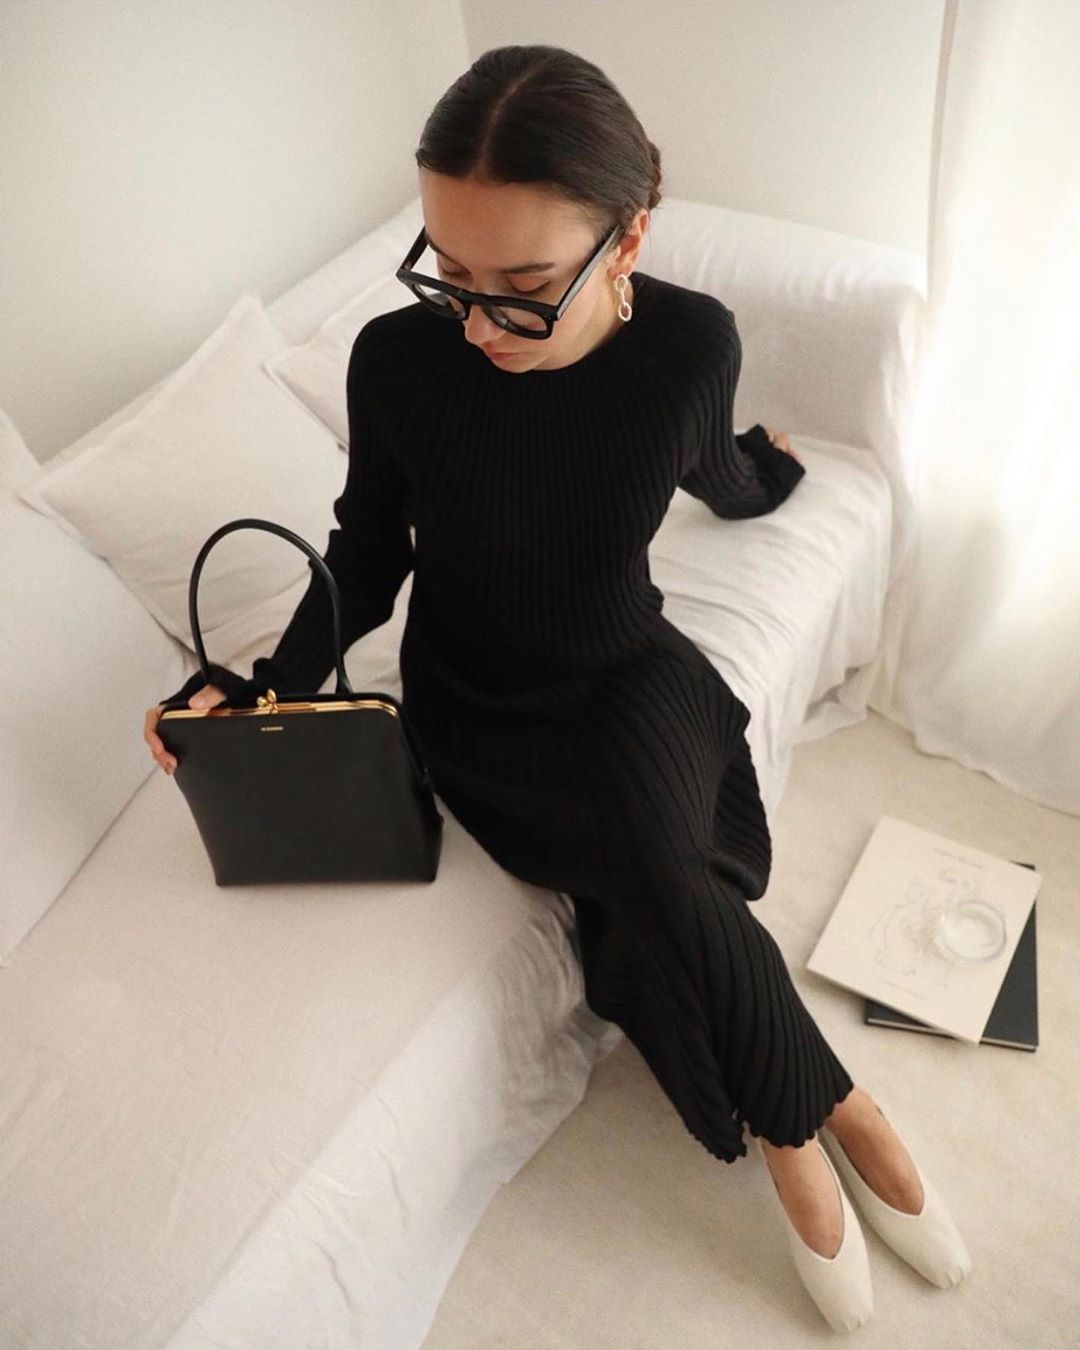 beatrice-gutu-loulou-studio-uturoa-dress-black-instagram